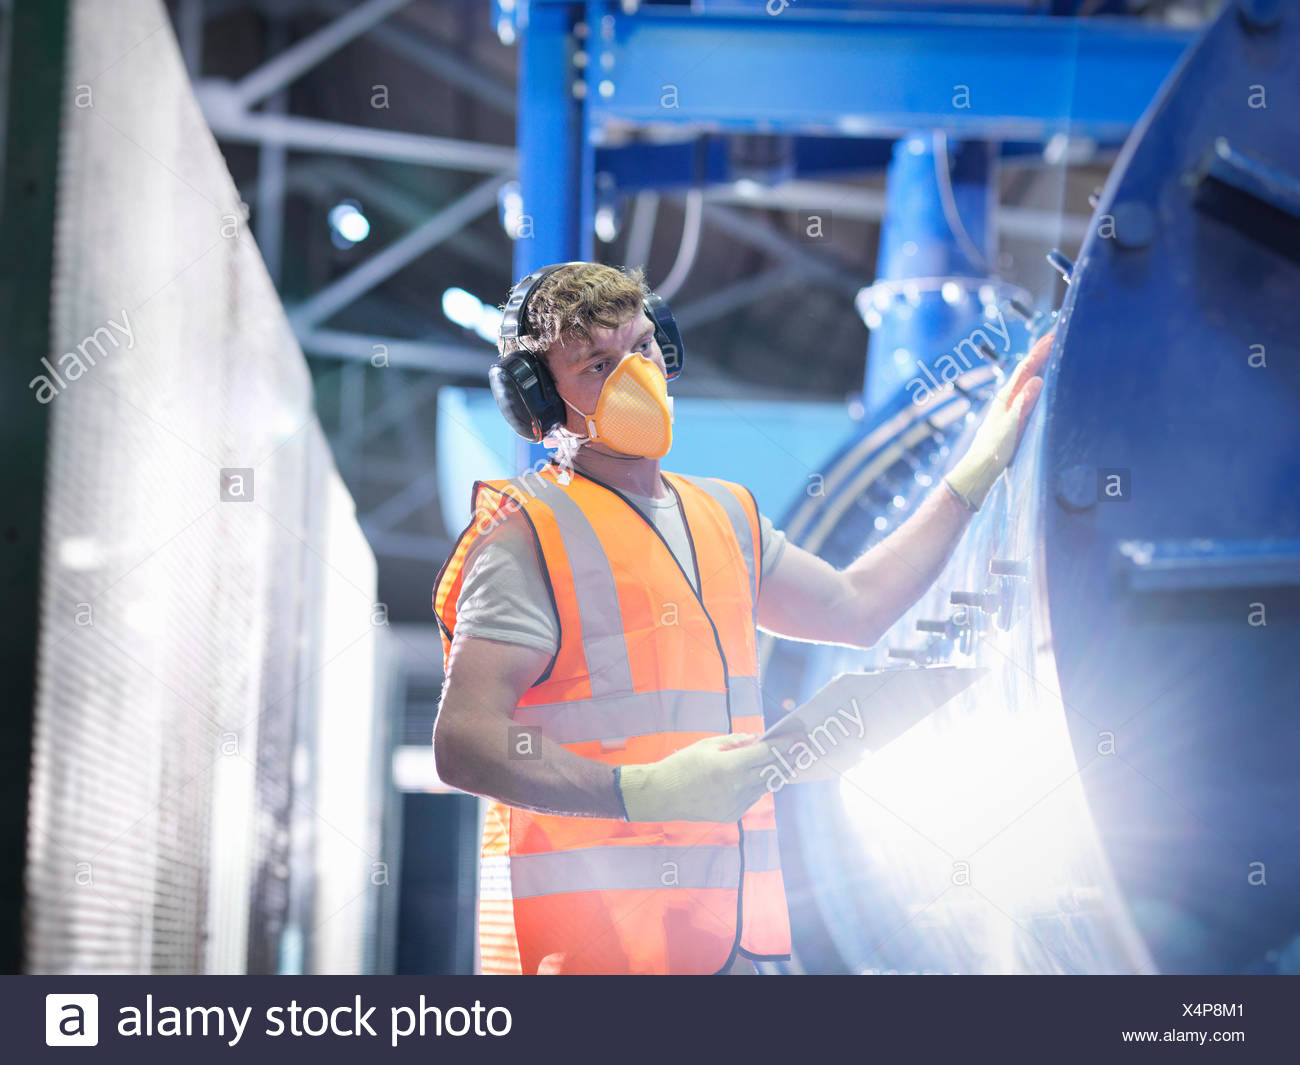 Worker checking metal ore grinding mill - Stock Image